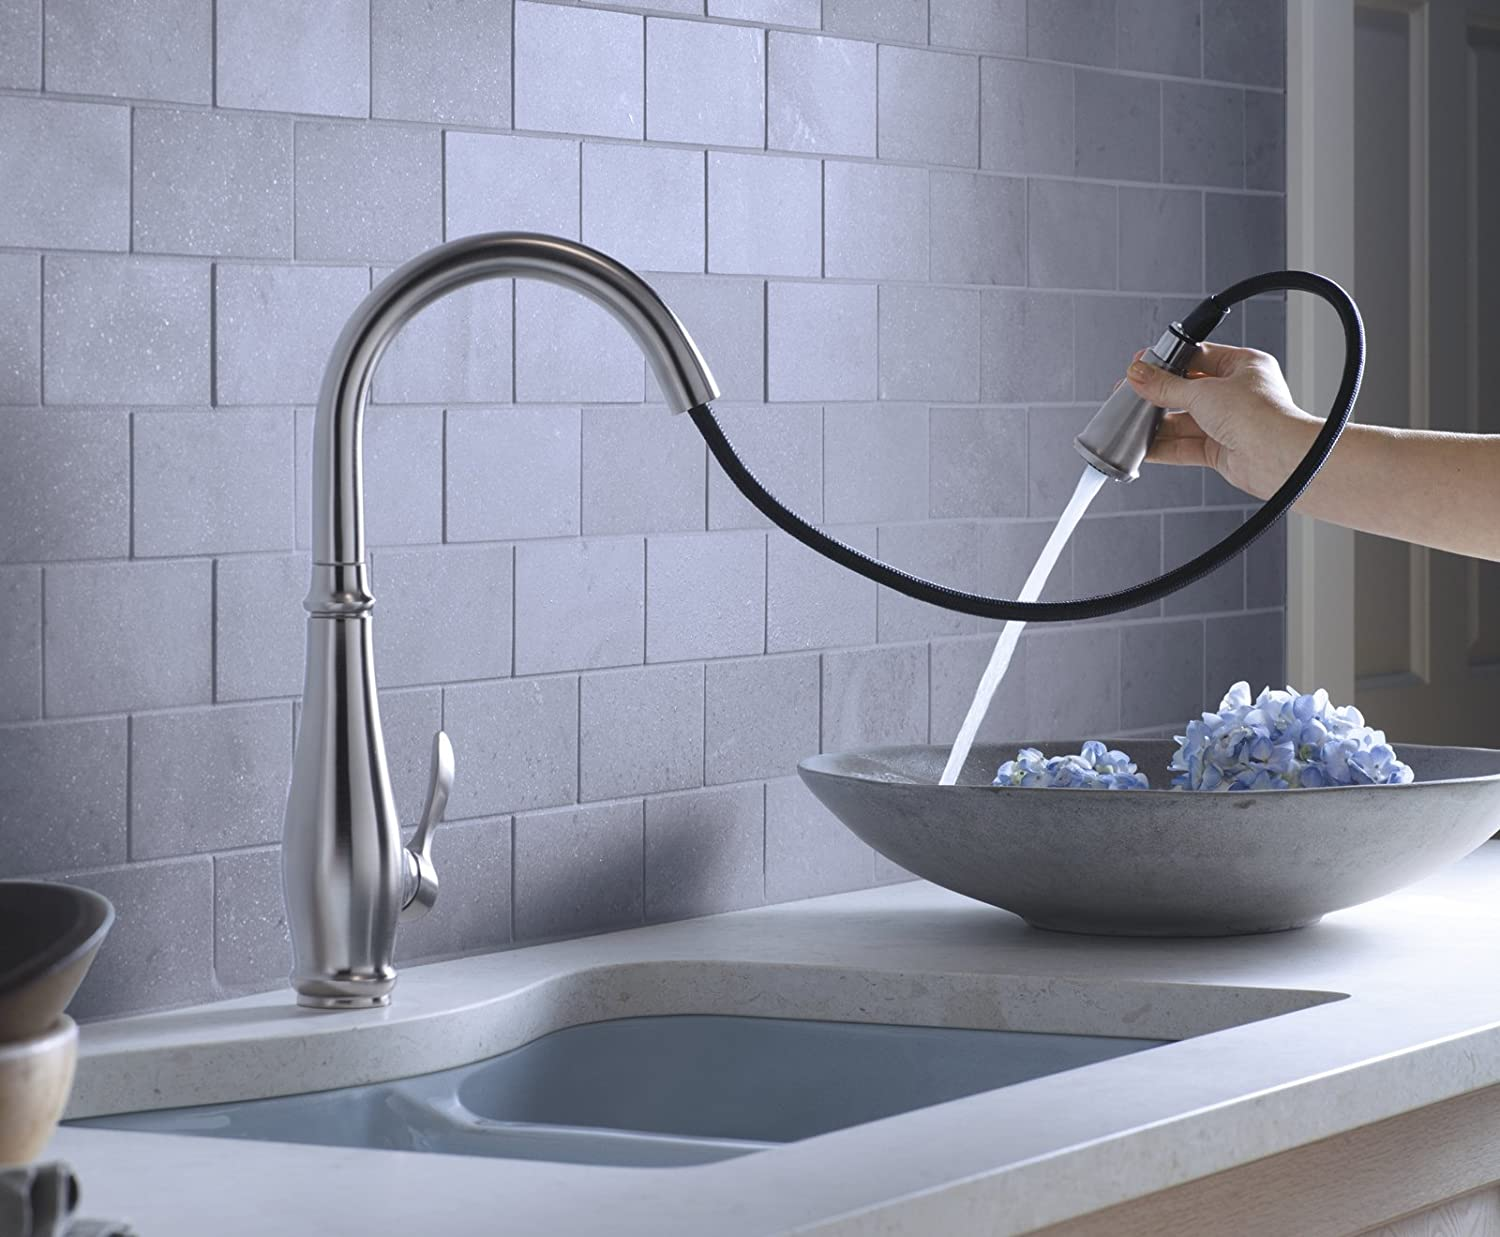 kitchen sinks faucets - 100 images - kitchen faucets american ...